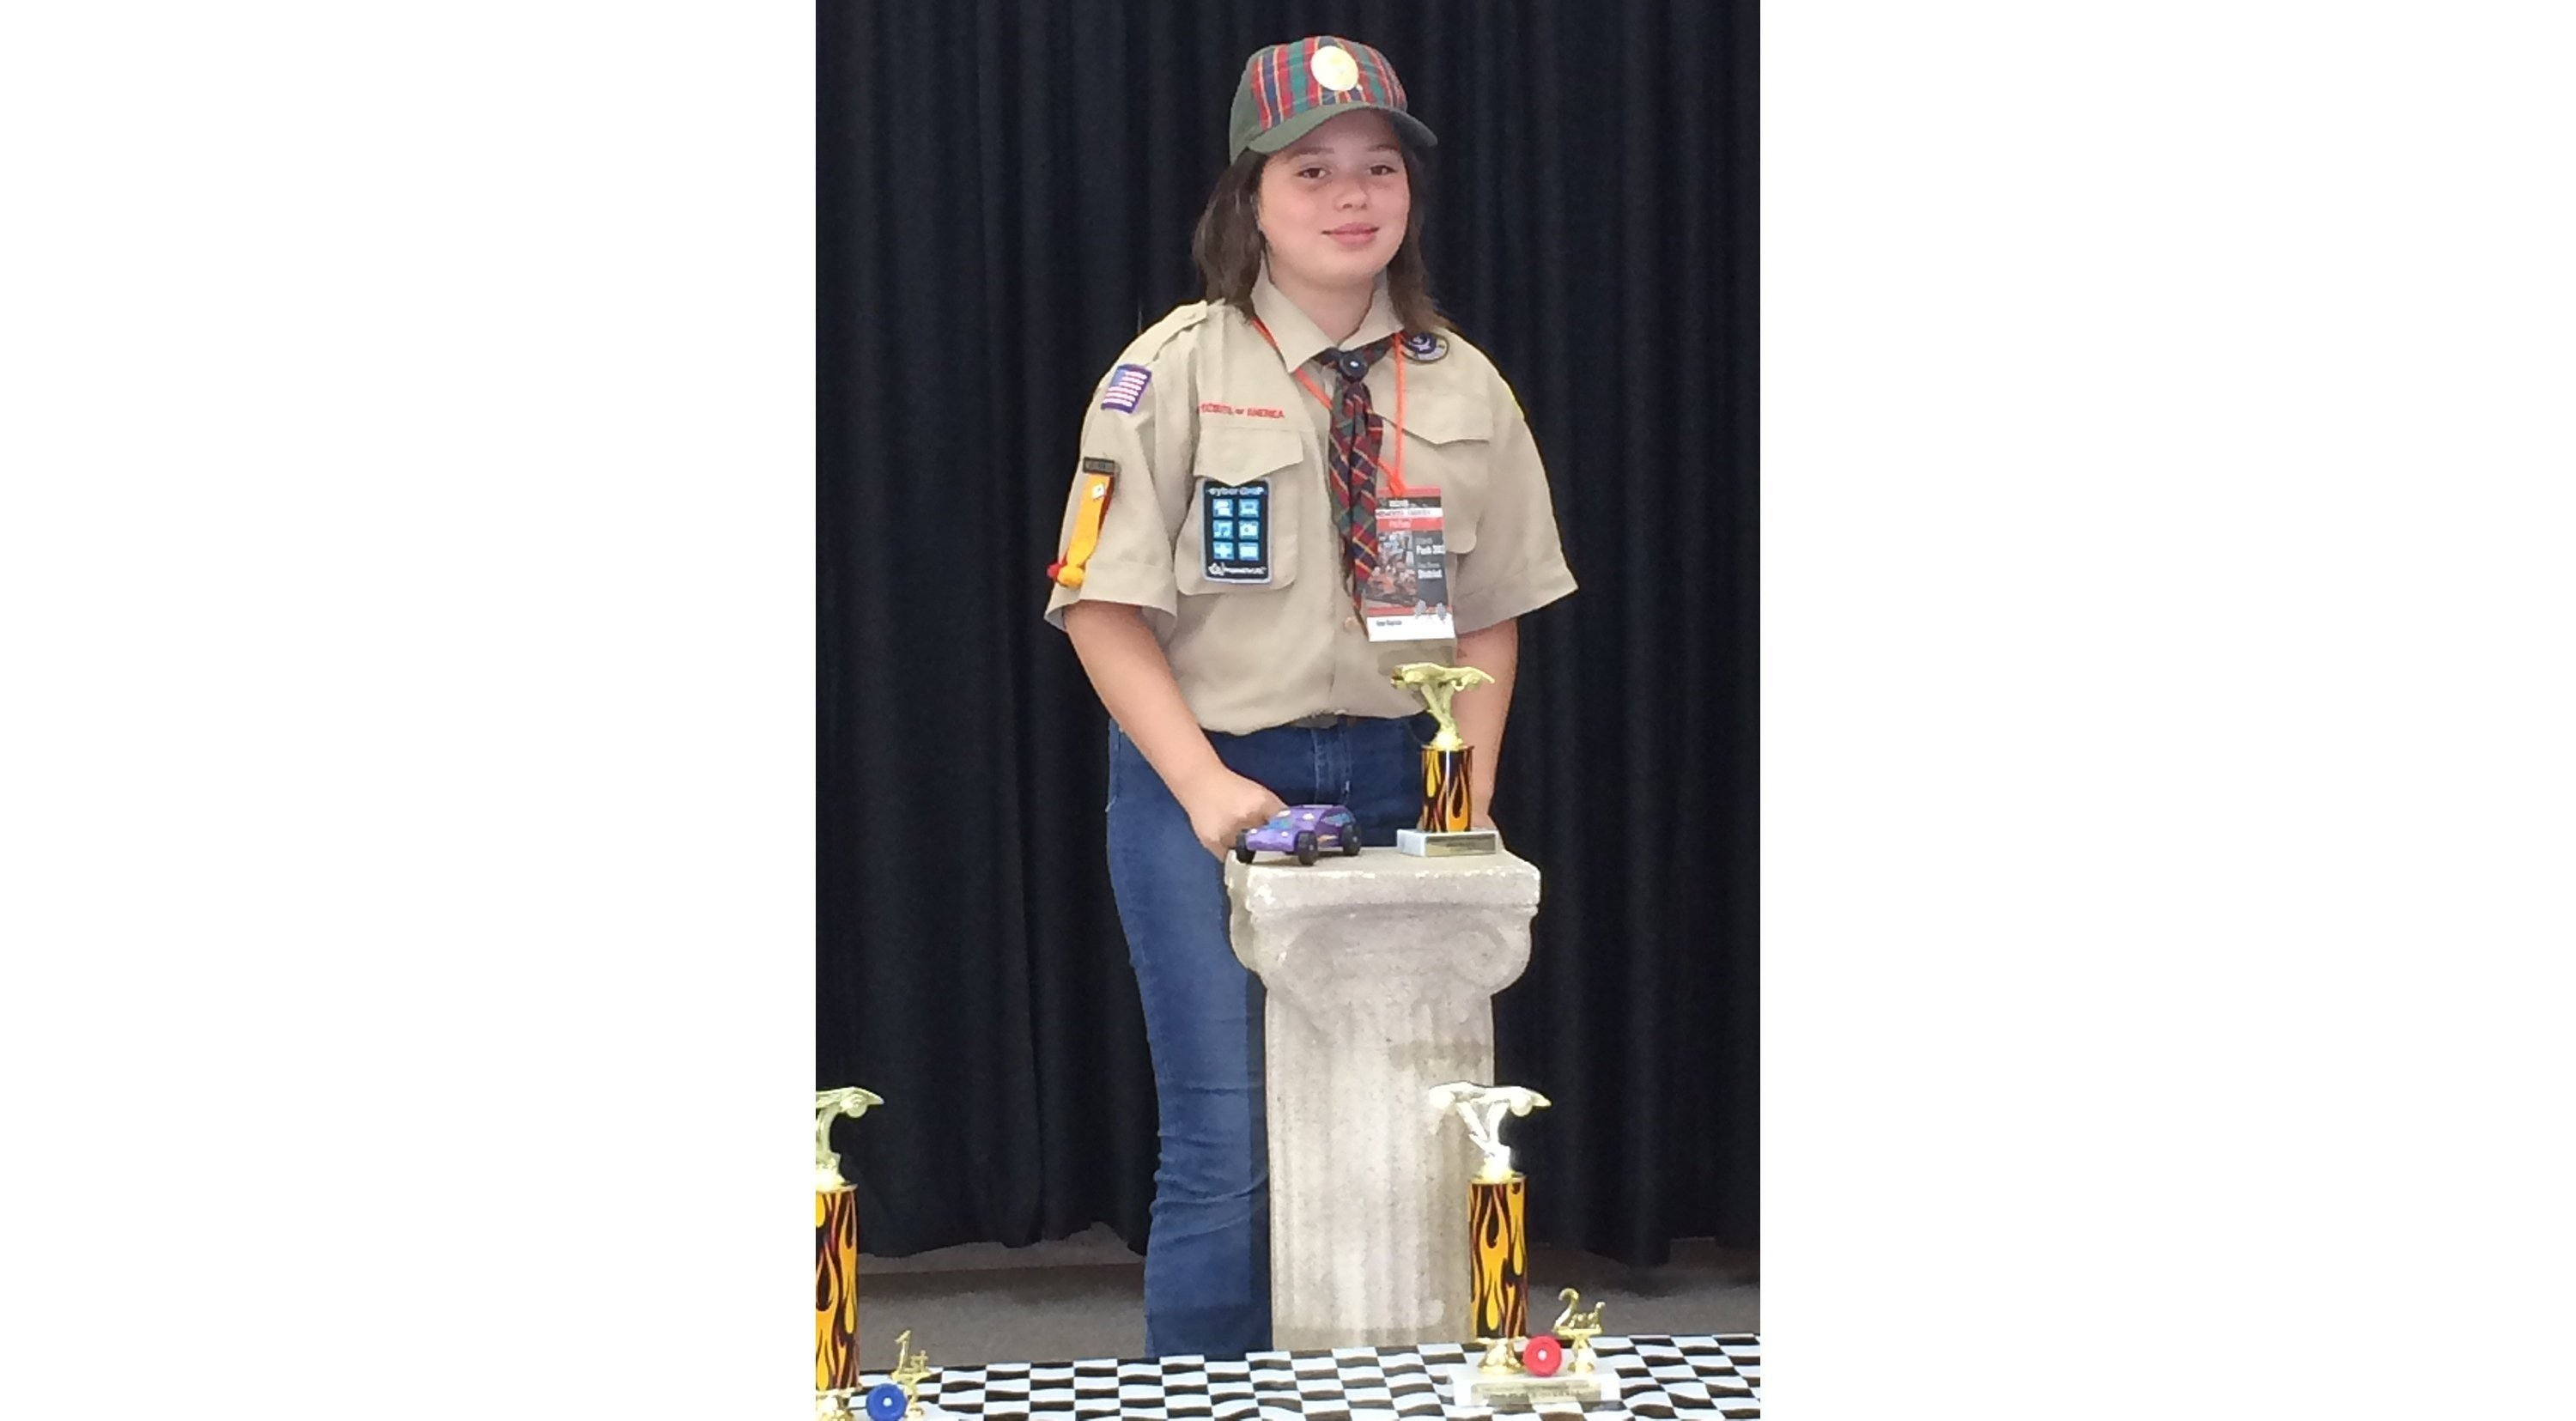 10-year-old Ana Garcia is on the path to become one of the first girls to receive the highest rank of Eagle Scout. She joined the Boy Scouts and sparked a sibling rivalry with her brother